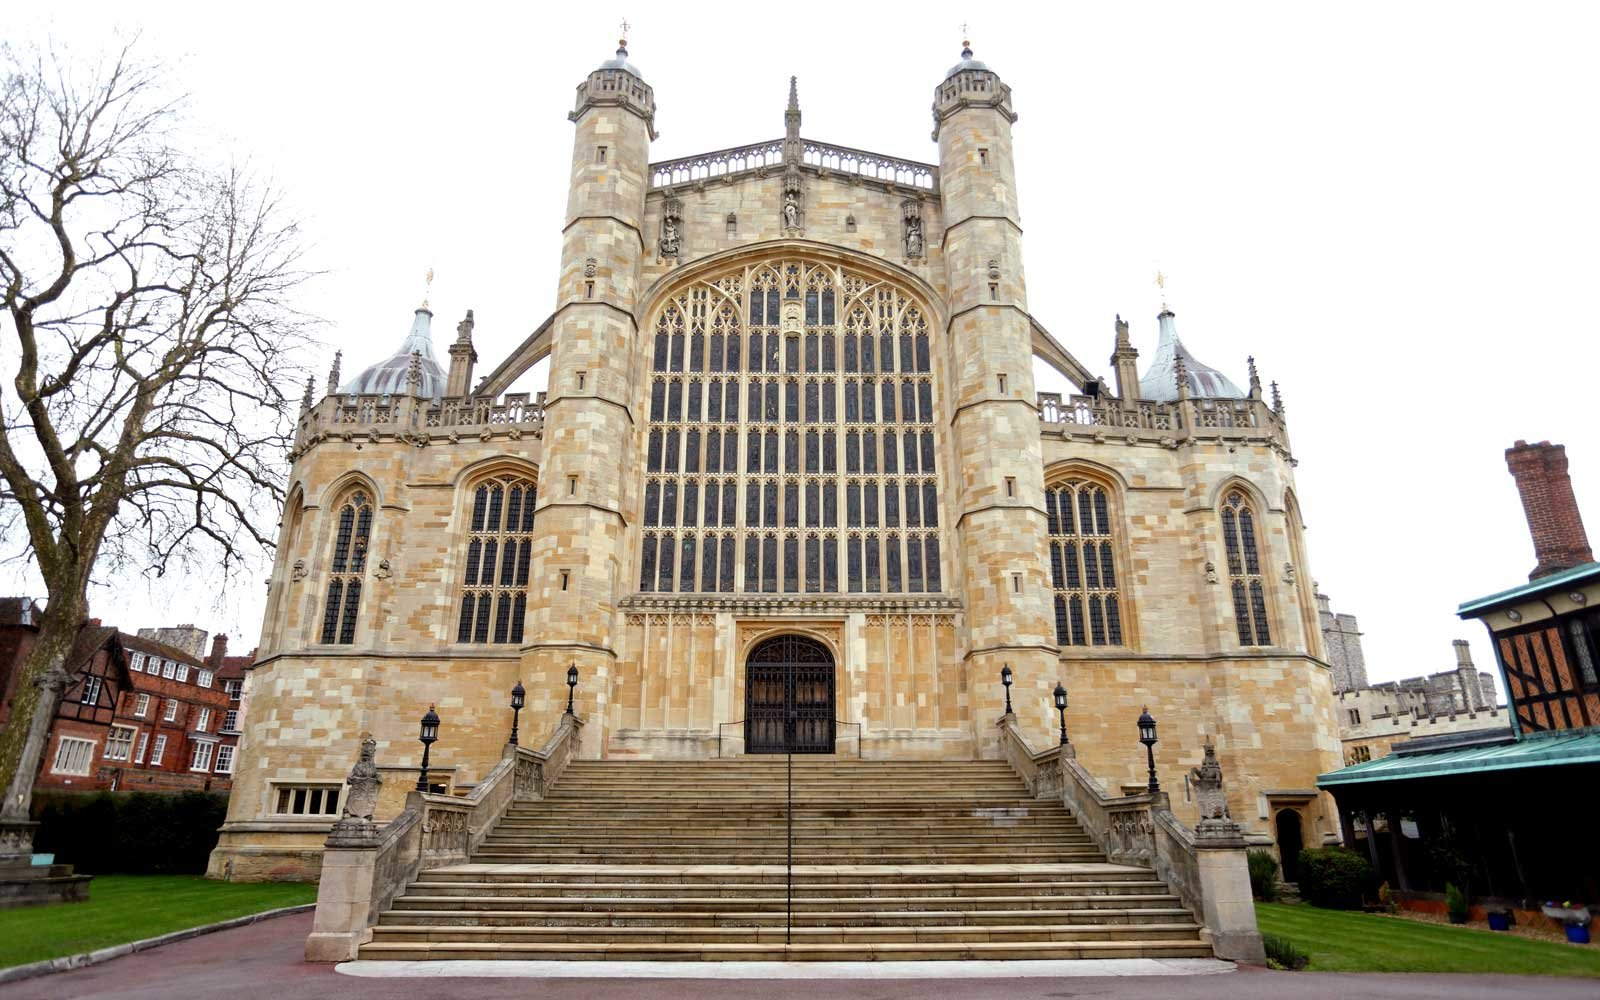 St George's Chapel at Windsor